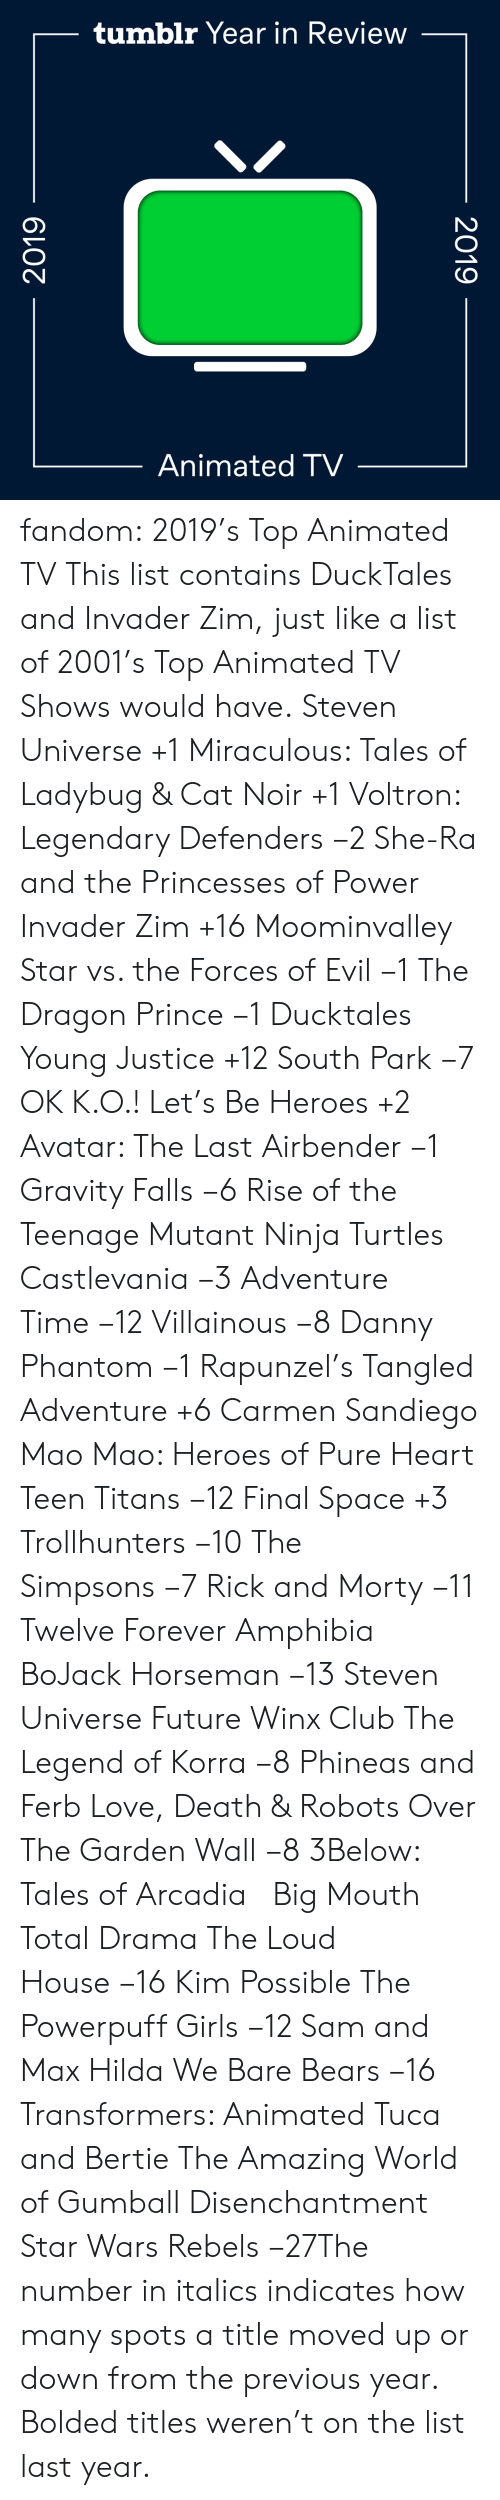 turtles: tumblr Year in Review  Animated TV  2019  2019 fandom:  2019's Top Animated TV  This list contains DuckTales and Invader Zim, just like a list of 2001's Top Animated TV Shows would have.  Steven Universe +1  Miraculous: Tales of Ladybug & Cat Noir +1  Voltron: Legendary Defenders −2  She-Ra and the Princesses of Power   Invader Zim +16  Moominvalley  Star vs. the Forces of Evil −1  The Dragon Prince −1  Ducktales  Young Justice +12  South Park −7  OK K.O.! Let's Be Heroes +2  Avatar: The Last Airbender −1  Gravity Falls −6  Rise of the Teenage Mutant Ninja Turtles  Castlevania −3  Adventure Time −12  Villainous −8  Danny Phantom −1  Rapunzel's Tangled Adventure +6  Carmen Sandiego  Mao Mao: Heroes of Pure Heart  Teen Titans −12  Final Space +3  Trollhunters −10  The Simpsons −7  Rick and Morty −11  Twelve Forever  Amphibia  BoJack Horseman −13  Steven Universe Future  Winx Club  The Legend of Korra −8  Phineas and Ferb  Love, Death & Robots  Over The Garden Wall −8  3Below: Tales of Arcadia    Big Mouth  Total Drama  The Loud House −16  Kim Possible  The Powerpuff Girls −12  Sam and Max  Hilda  We Bare Bears −16  Transformers: Animated  Tuca and Bertie  The Amazing World of Gumball  Disenchantment Star Wars Rebels −27The number in italics indicates how many spots a title moved up or down from the previous year. Bolded titles weren't on the list last year.